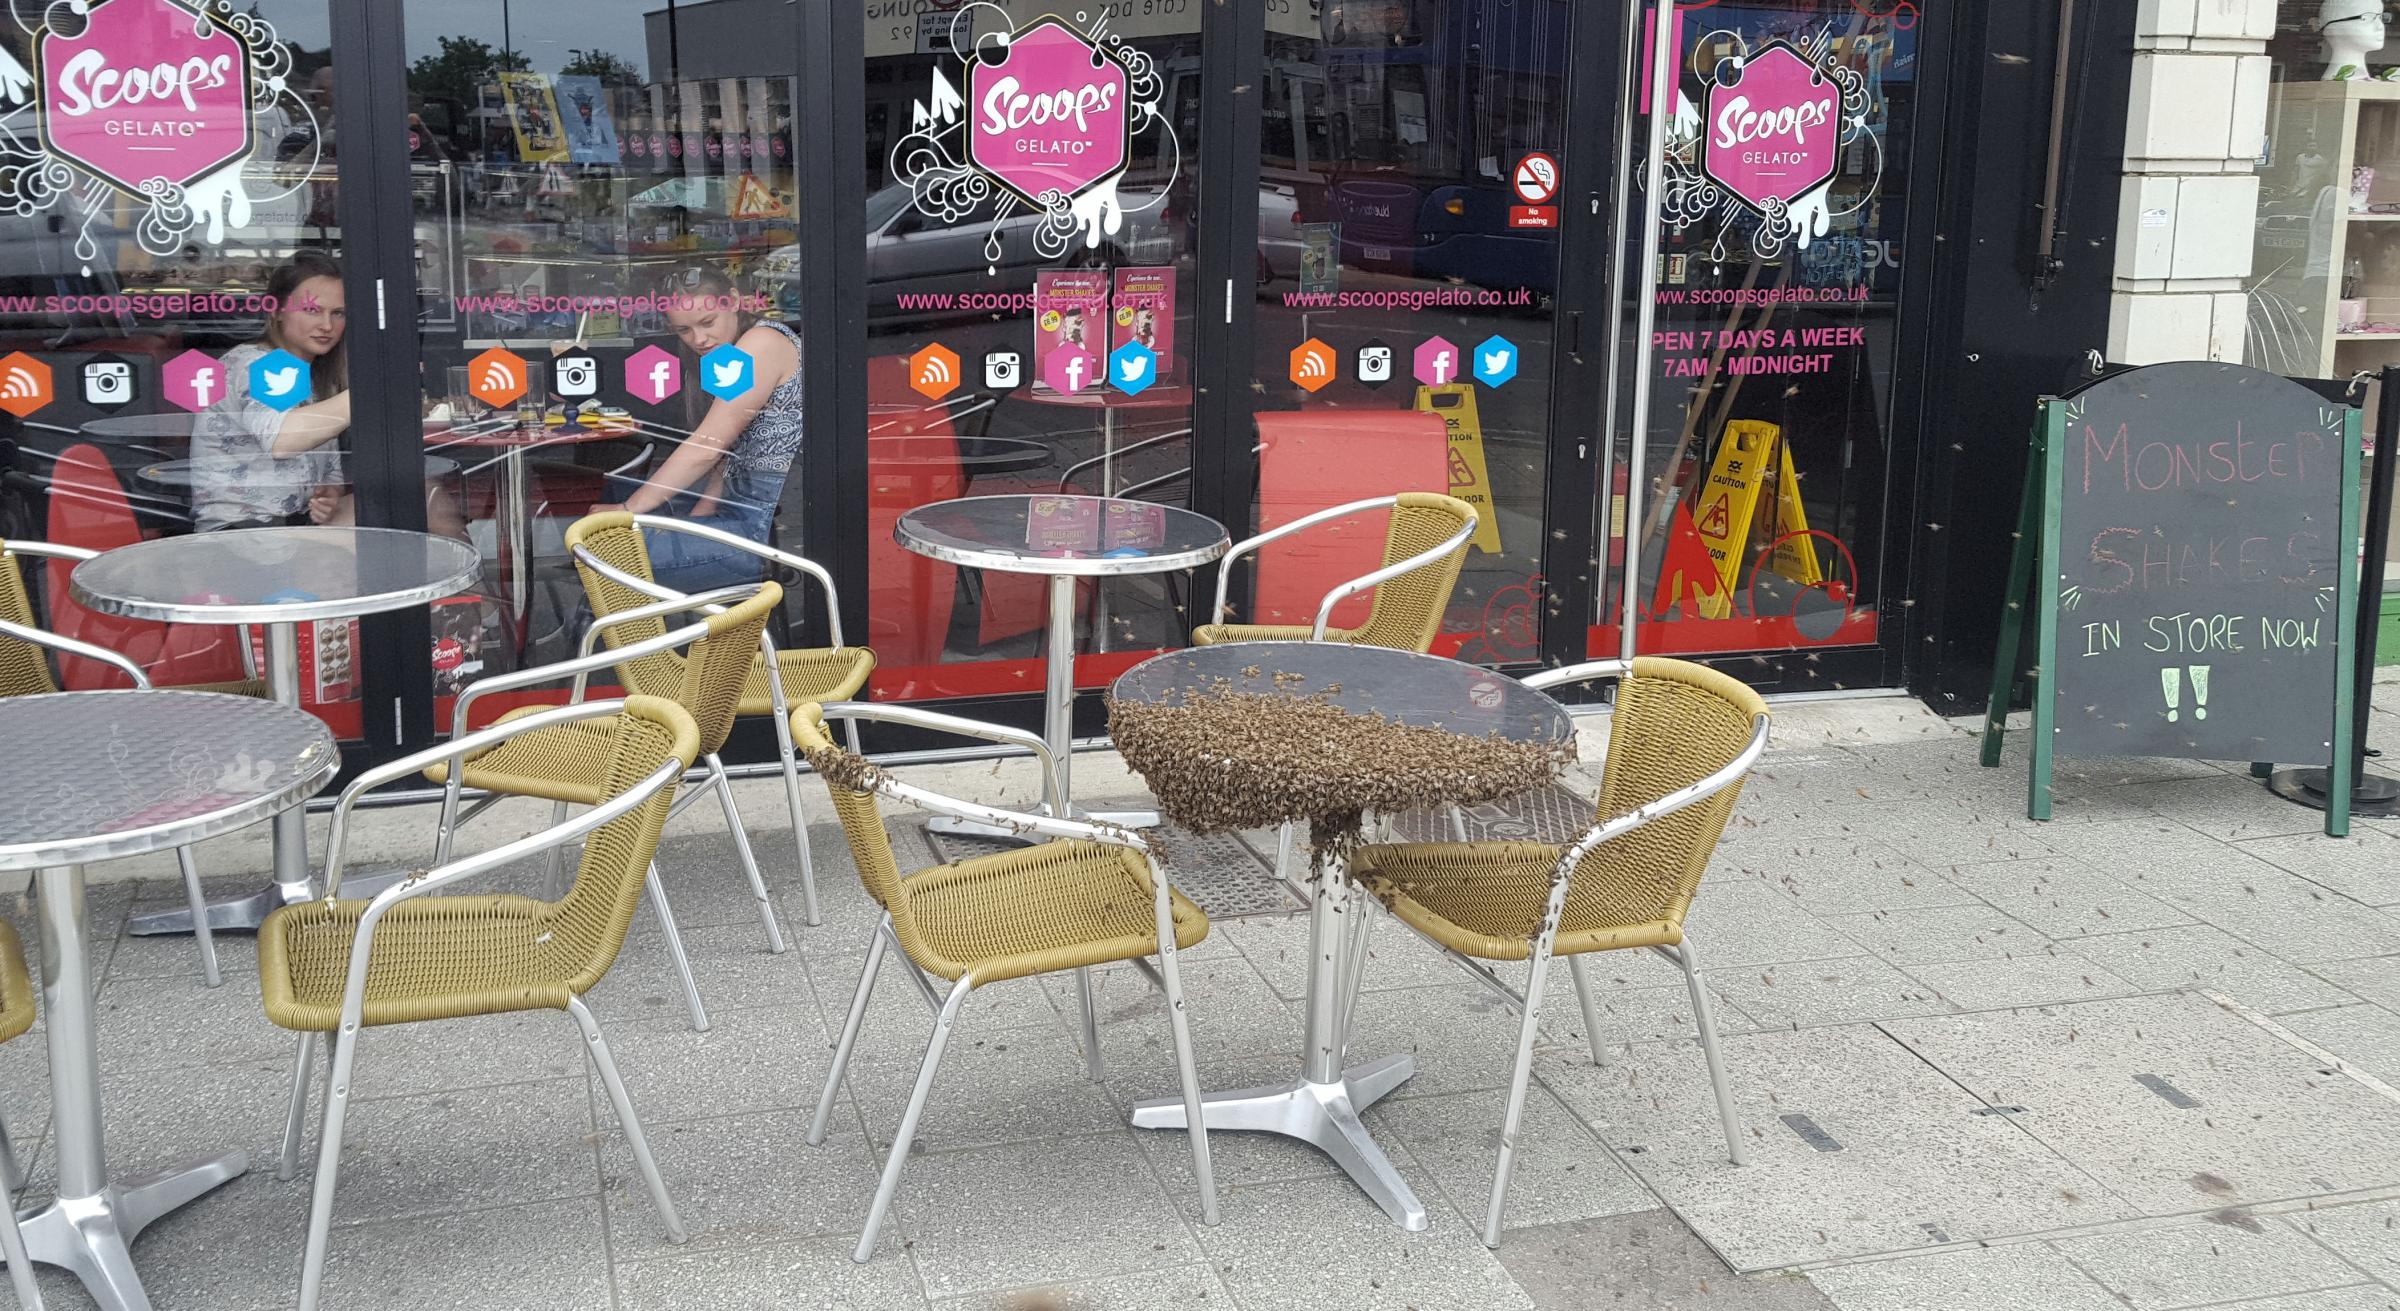 Swarm Of Bees At Scoops Gelato In Portswood Road Forces City